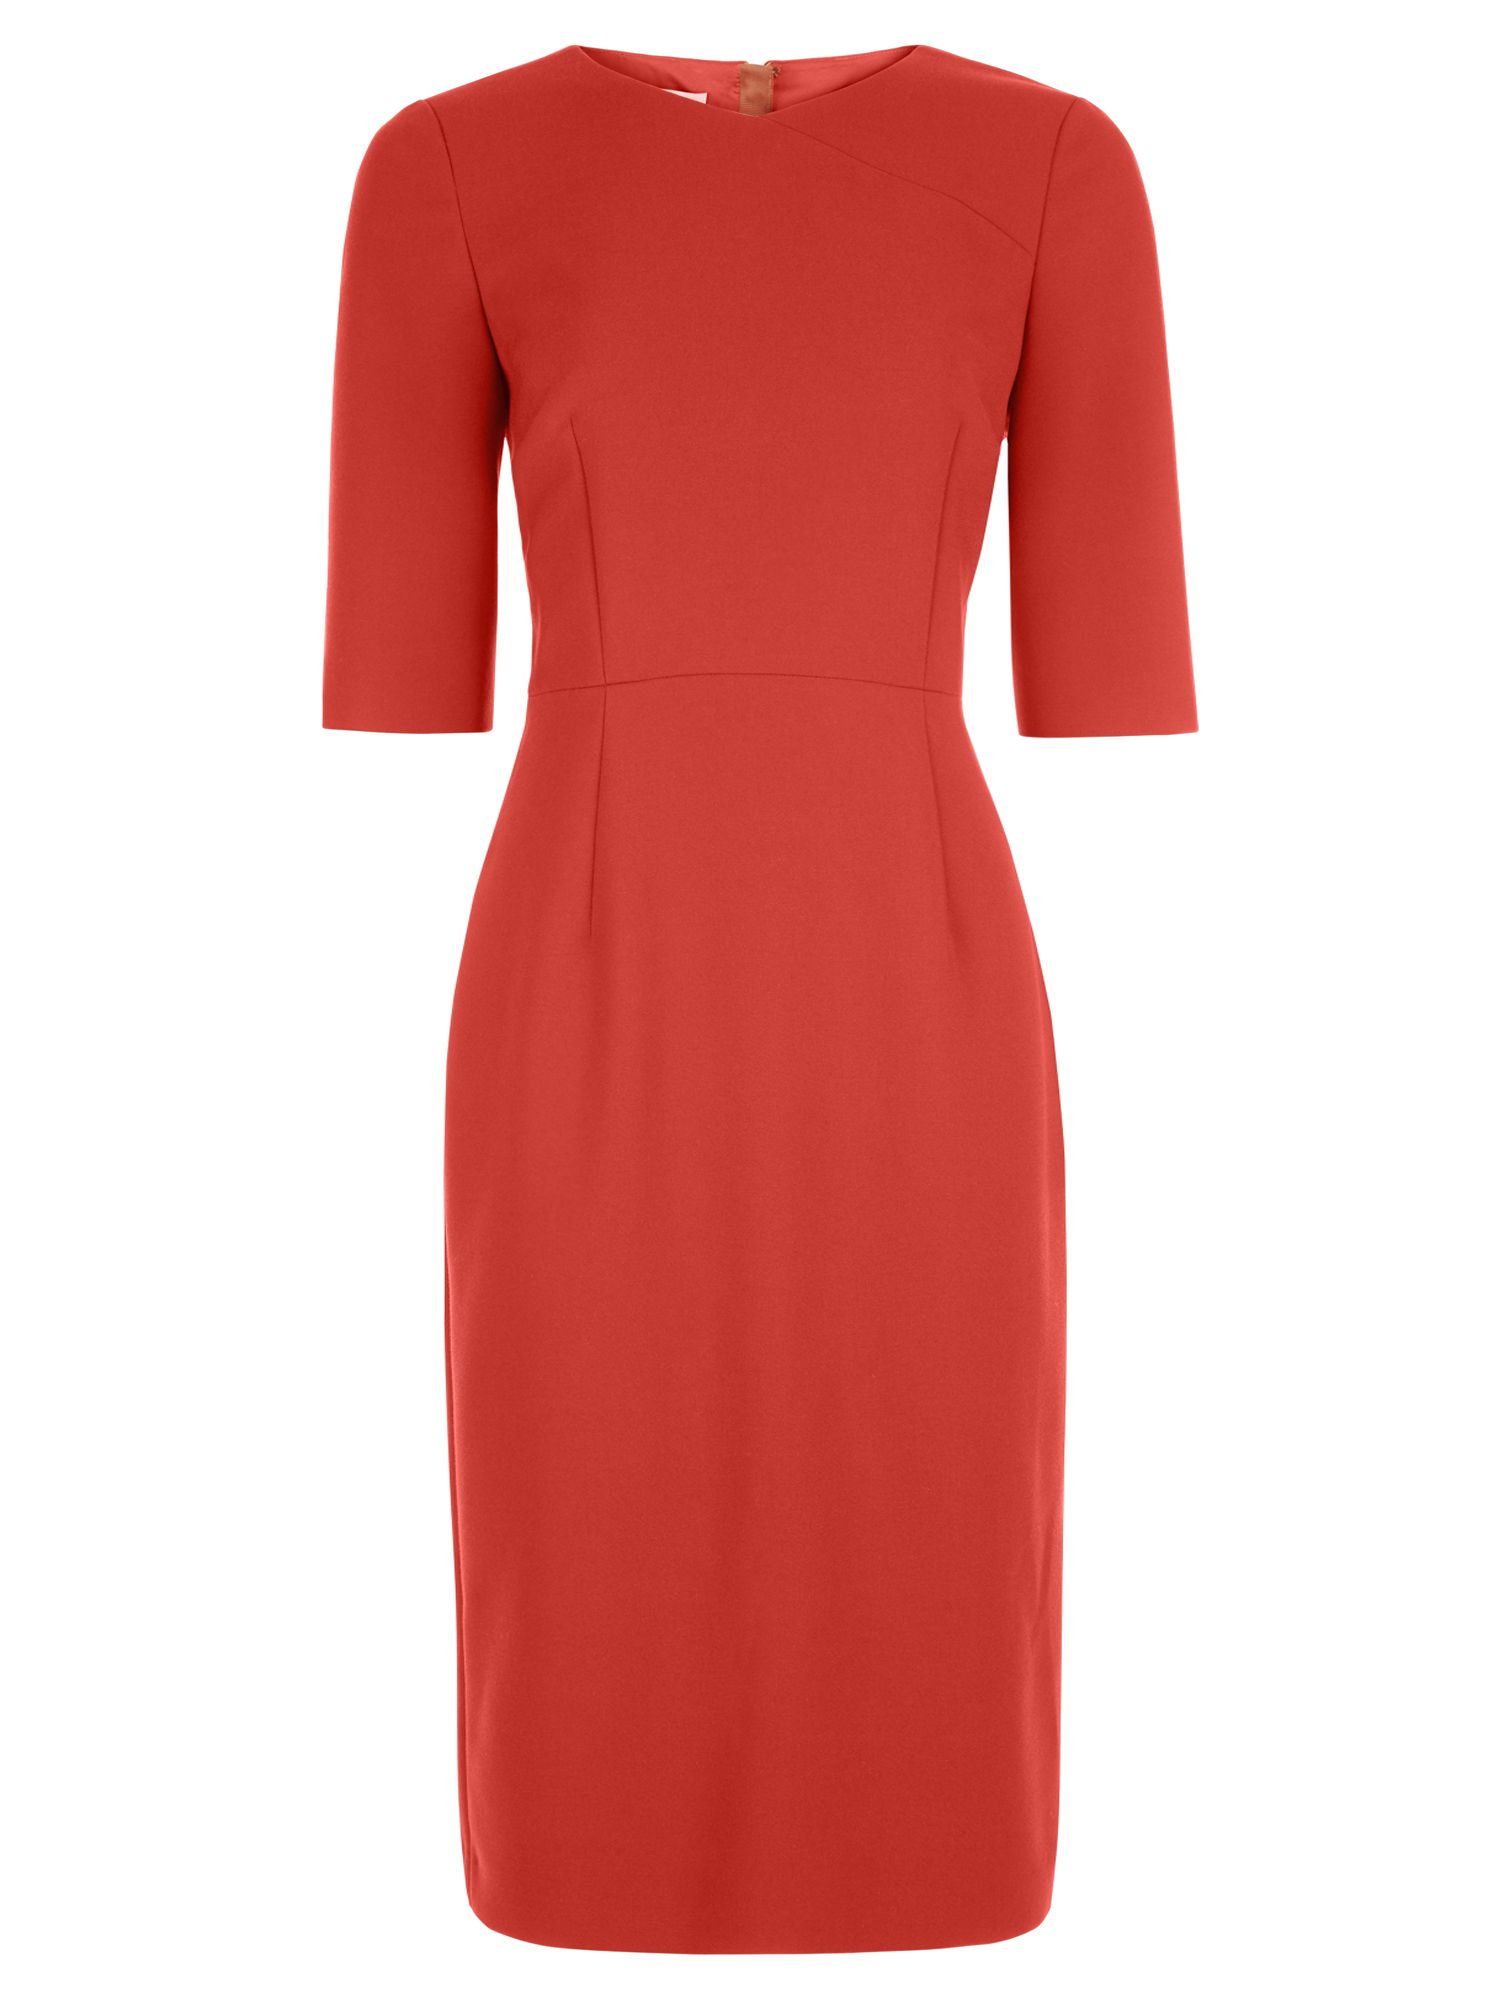 Hobbs Karissa Dress, Orange